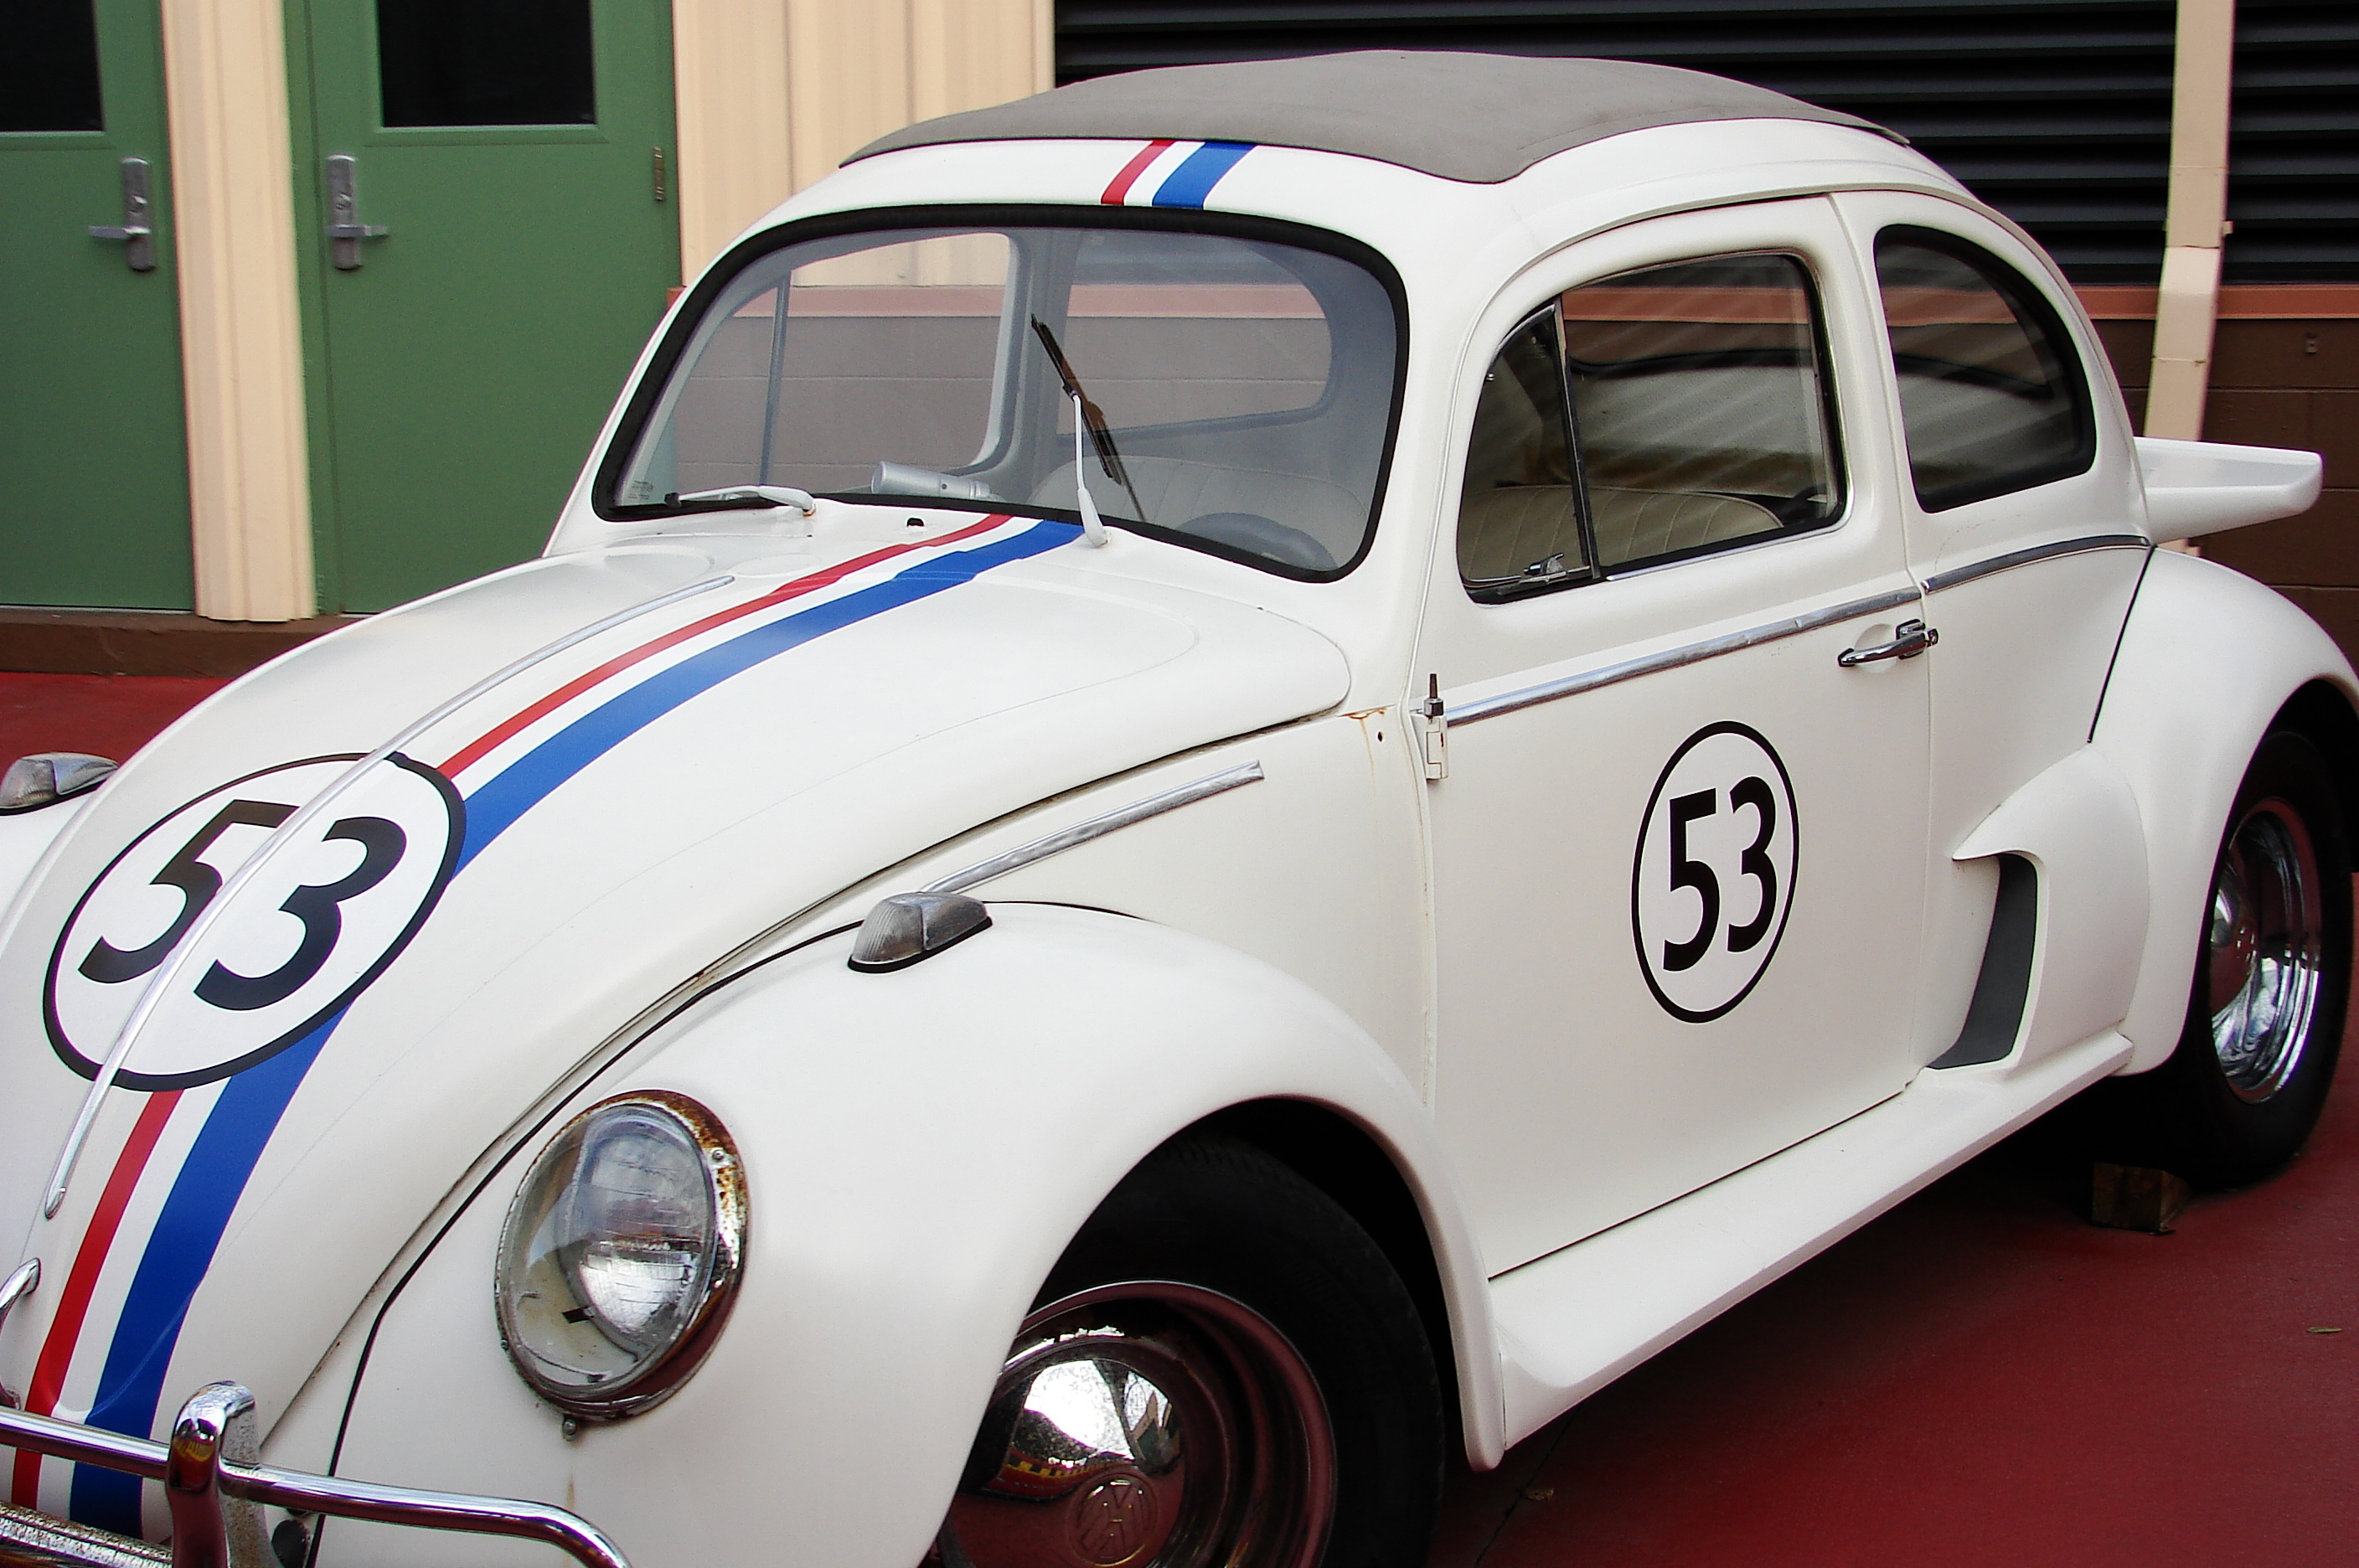 Herbie 1138 Technology Id Like to See: Googles Self Driving Car Using Google Maps and Mobile Pay Per Click